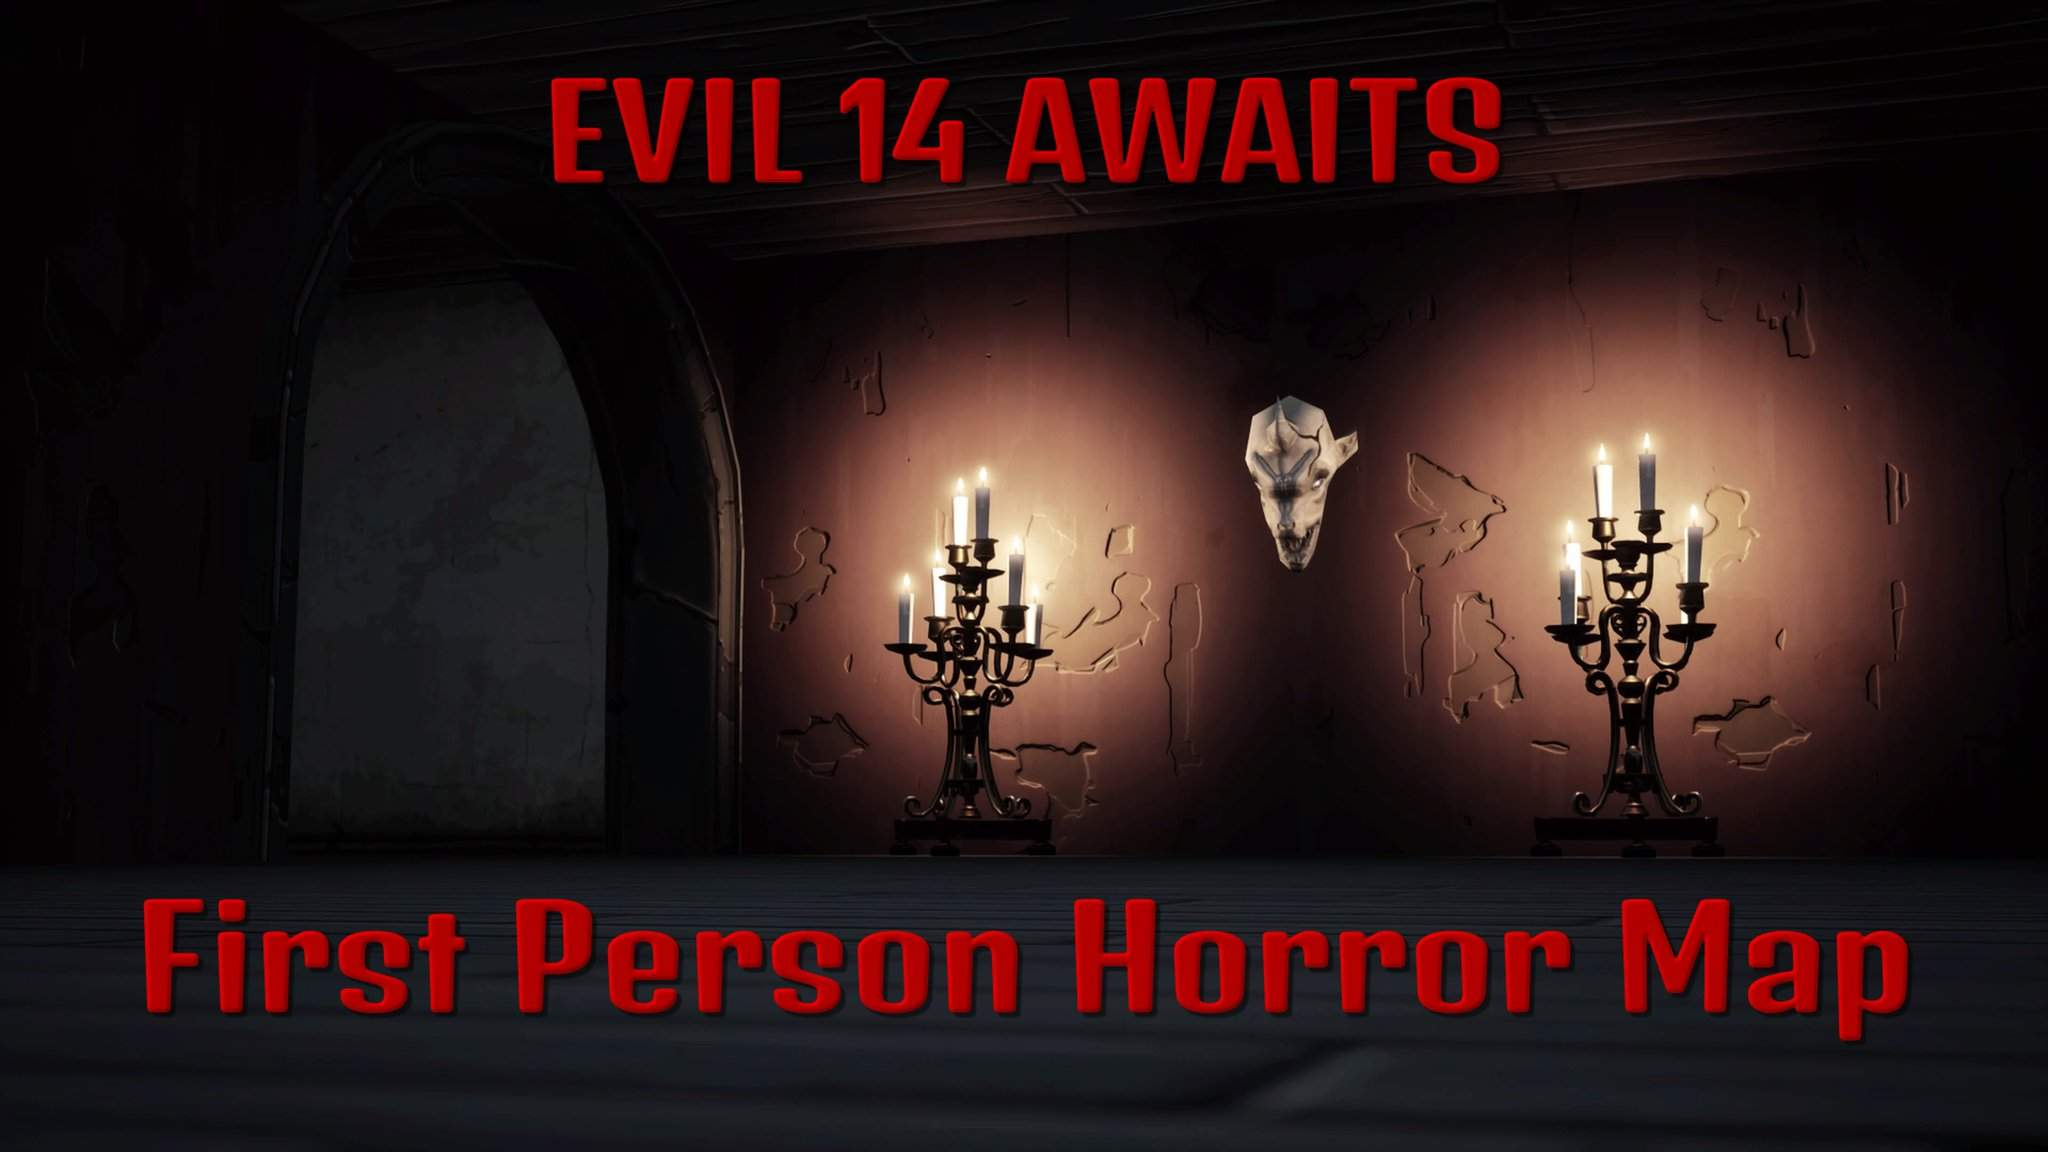 EVIL 14 AWAITS: FIRST PERSON